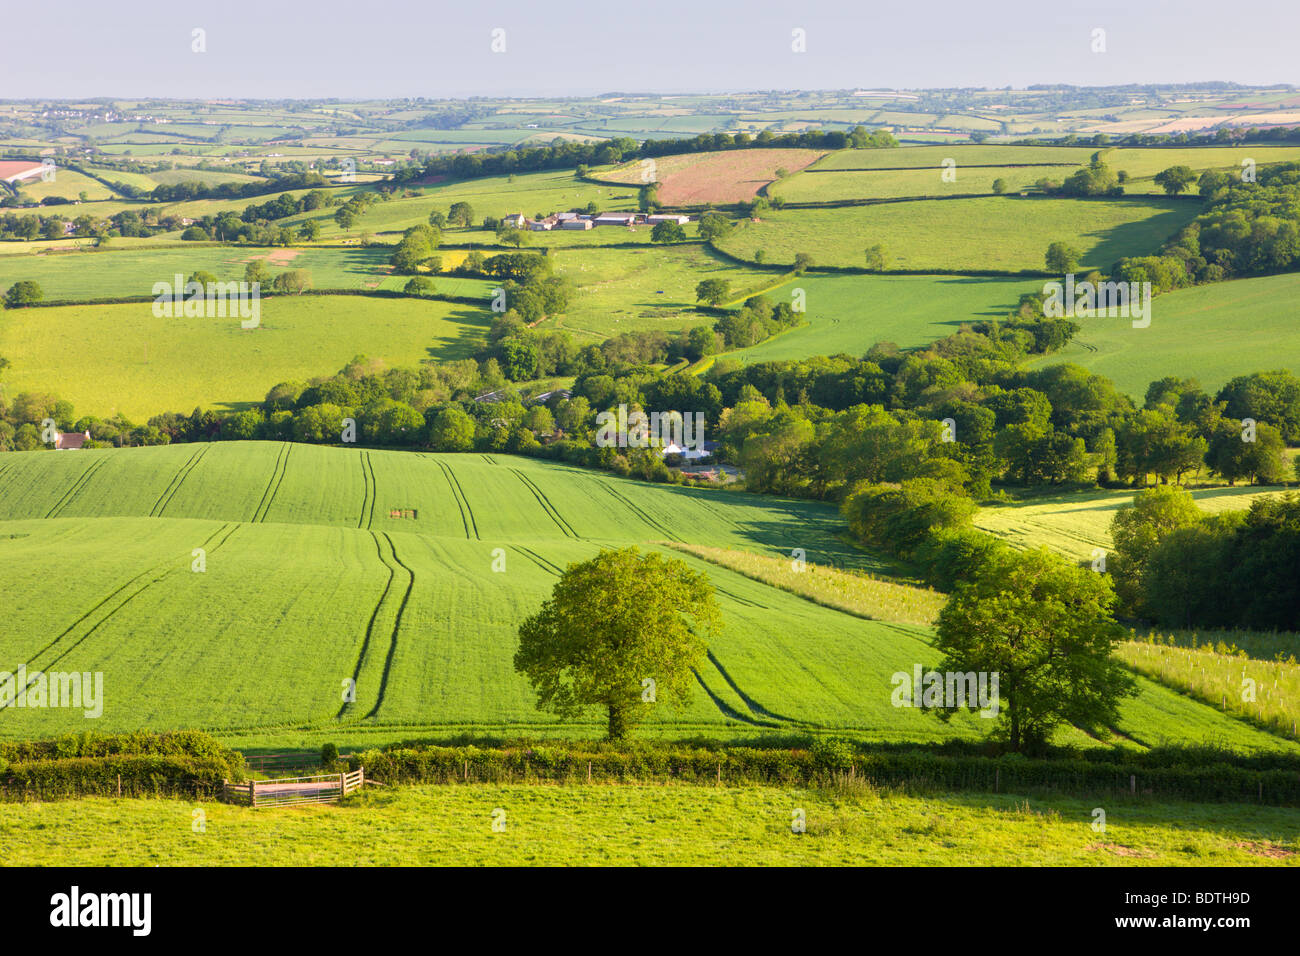 Rolling farmland near Stockleigh Pomeroy, Devon, England. Summer (June) 2009 - Stock Image